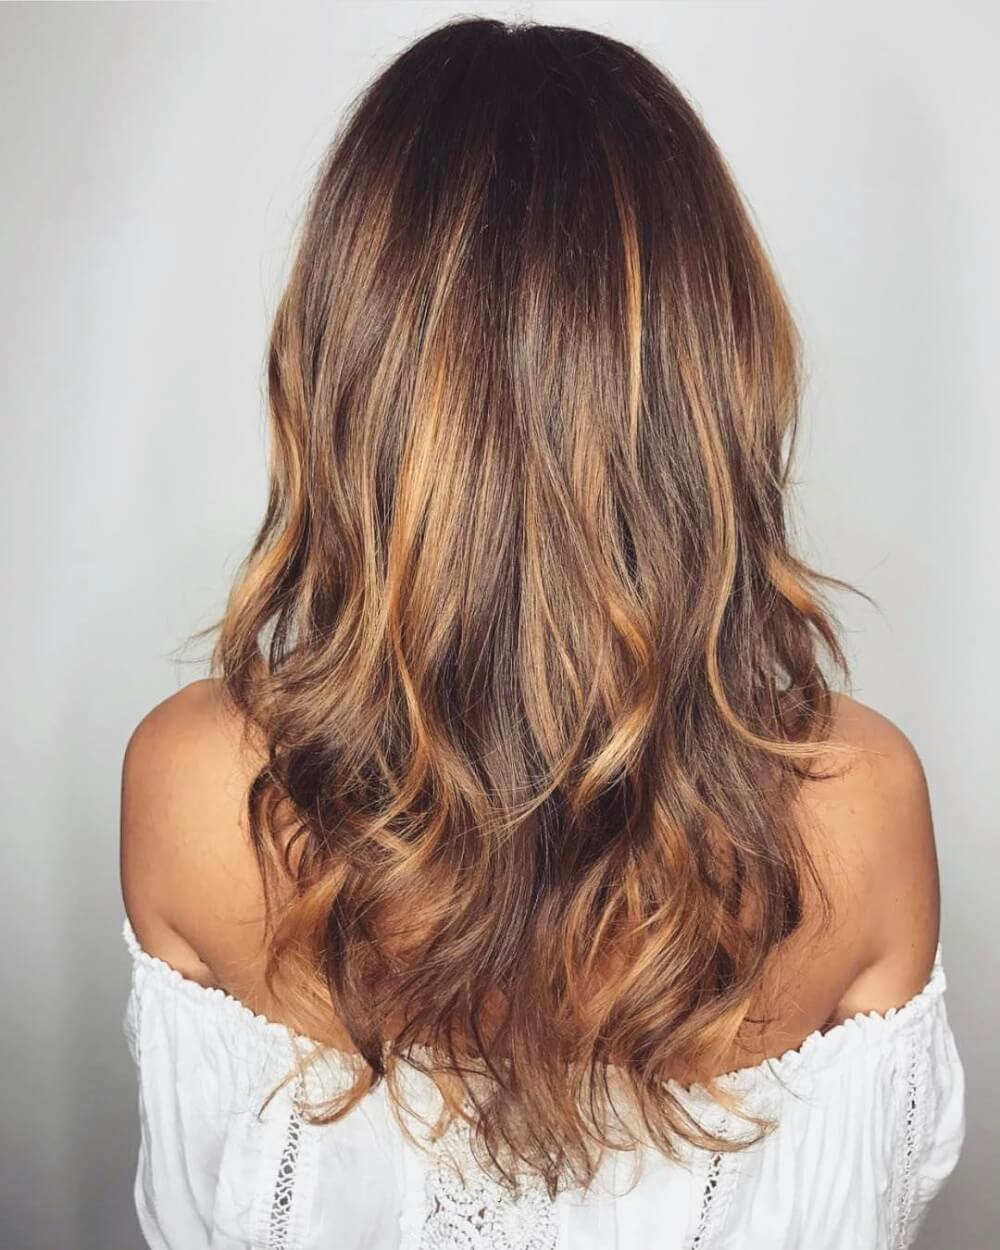 Shoulder Length Brown Hair With Natural Highlights